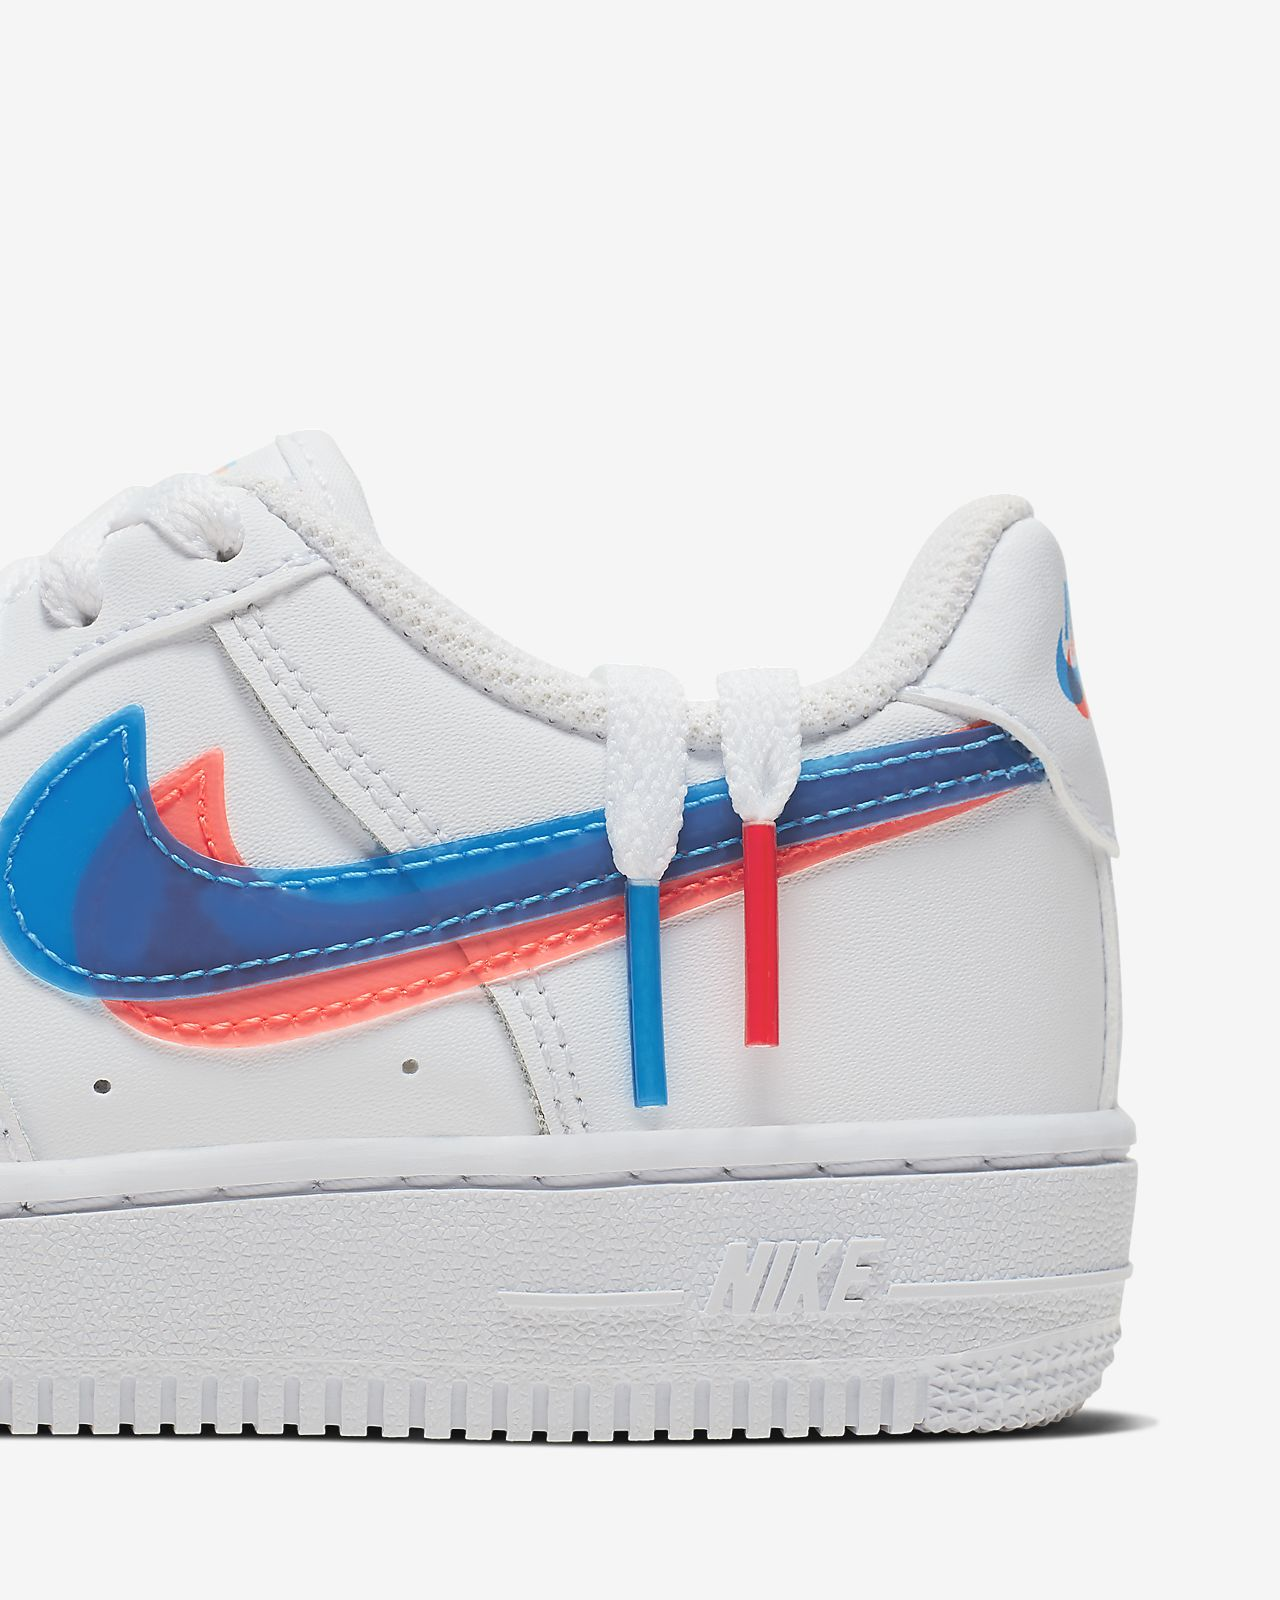 Kinder nike Weiß blau Air Force 1 Lv8 Ksa Sneaker